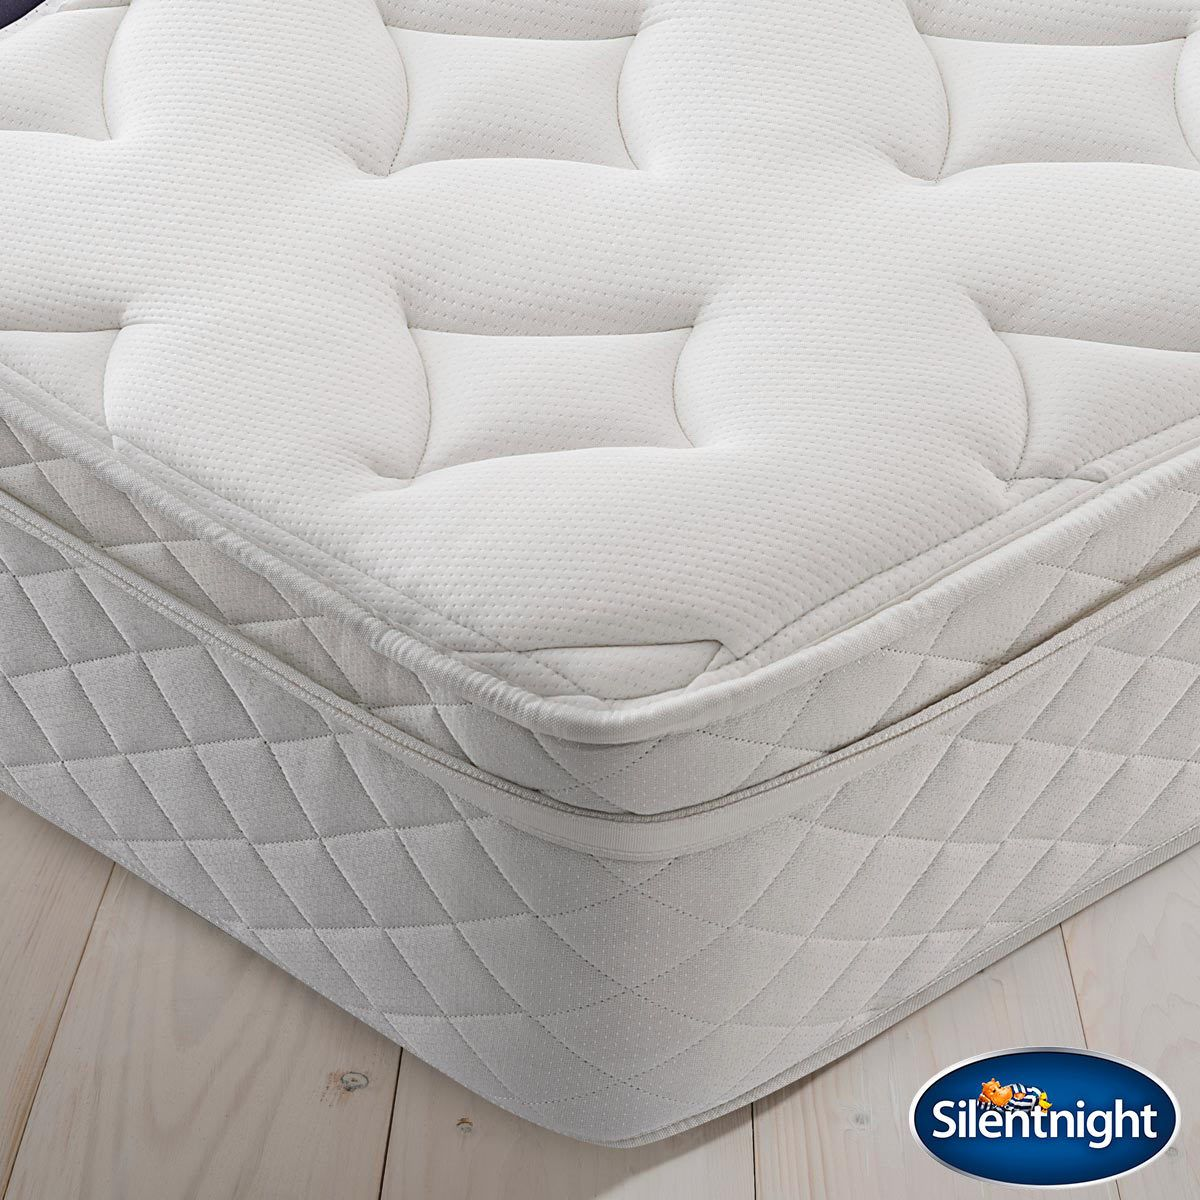 Silentnight Miracoil Memory Cushion Top Mattress Double